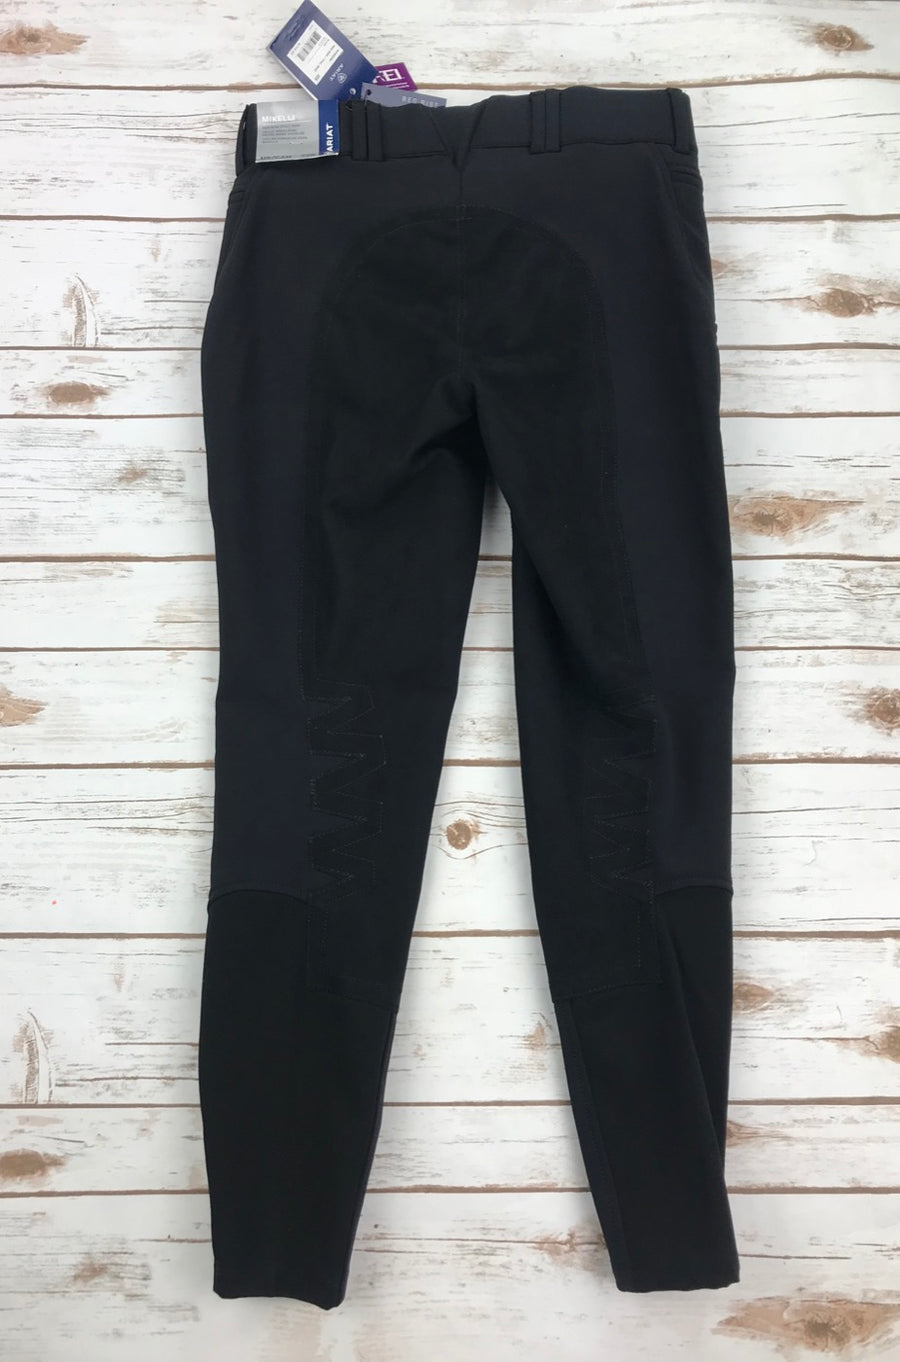 Ariat Mikelli Softshell Full Seat Breeches in Black- Back View